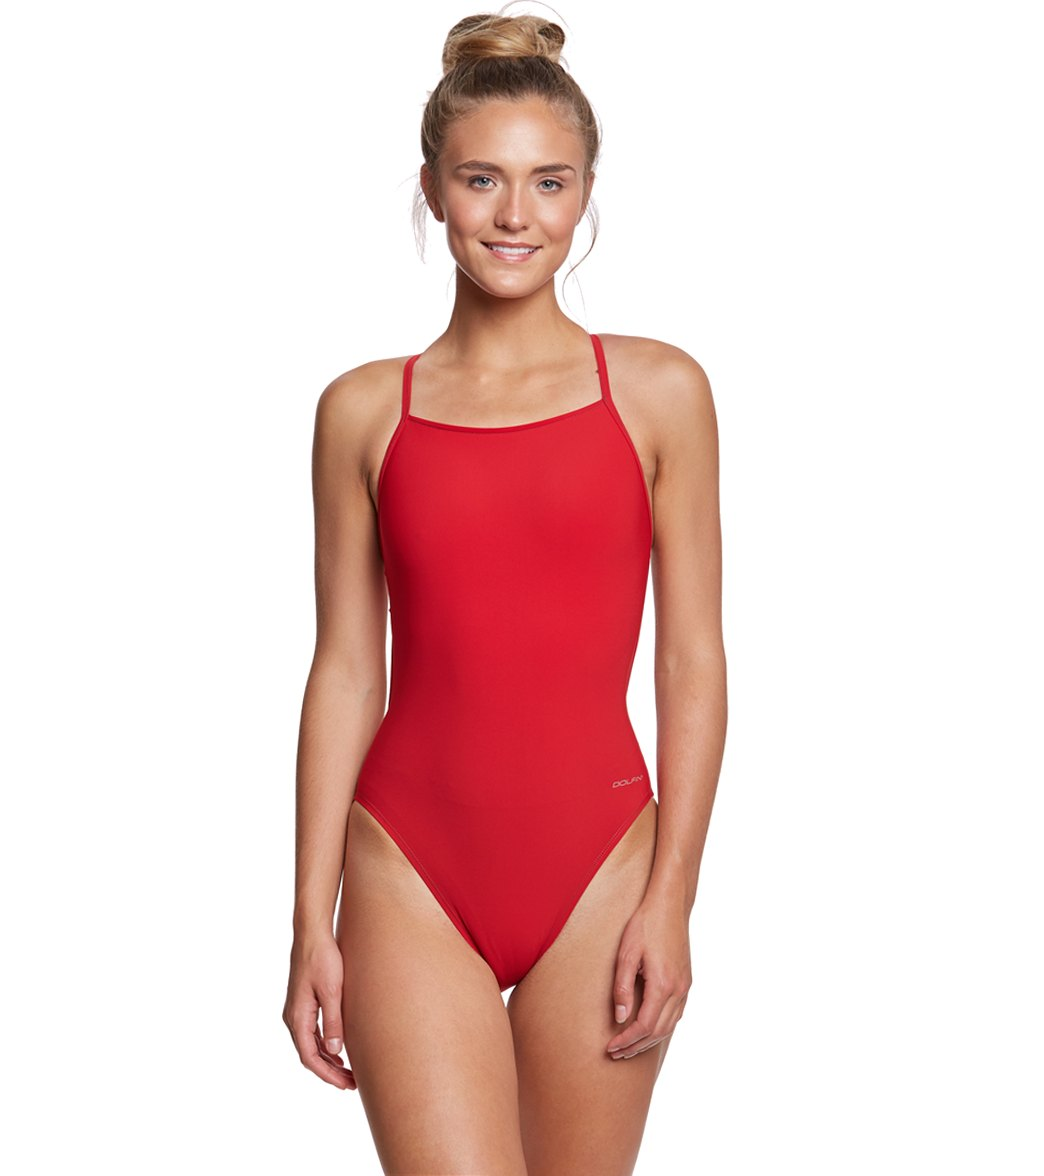 d0a1eff09efb5 Dolfin Graphlite Solid Cross Back One Piece Swimsuit at SwimOutlet.com -  Free Shipping